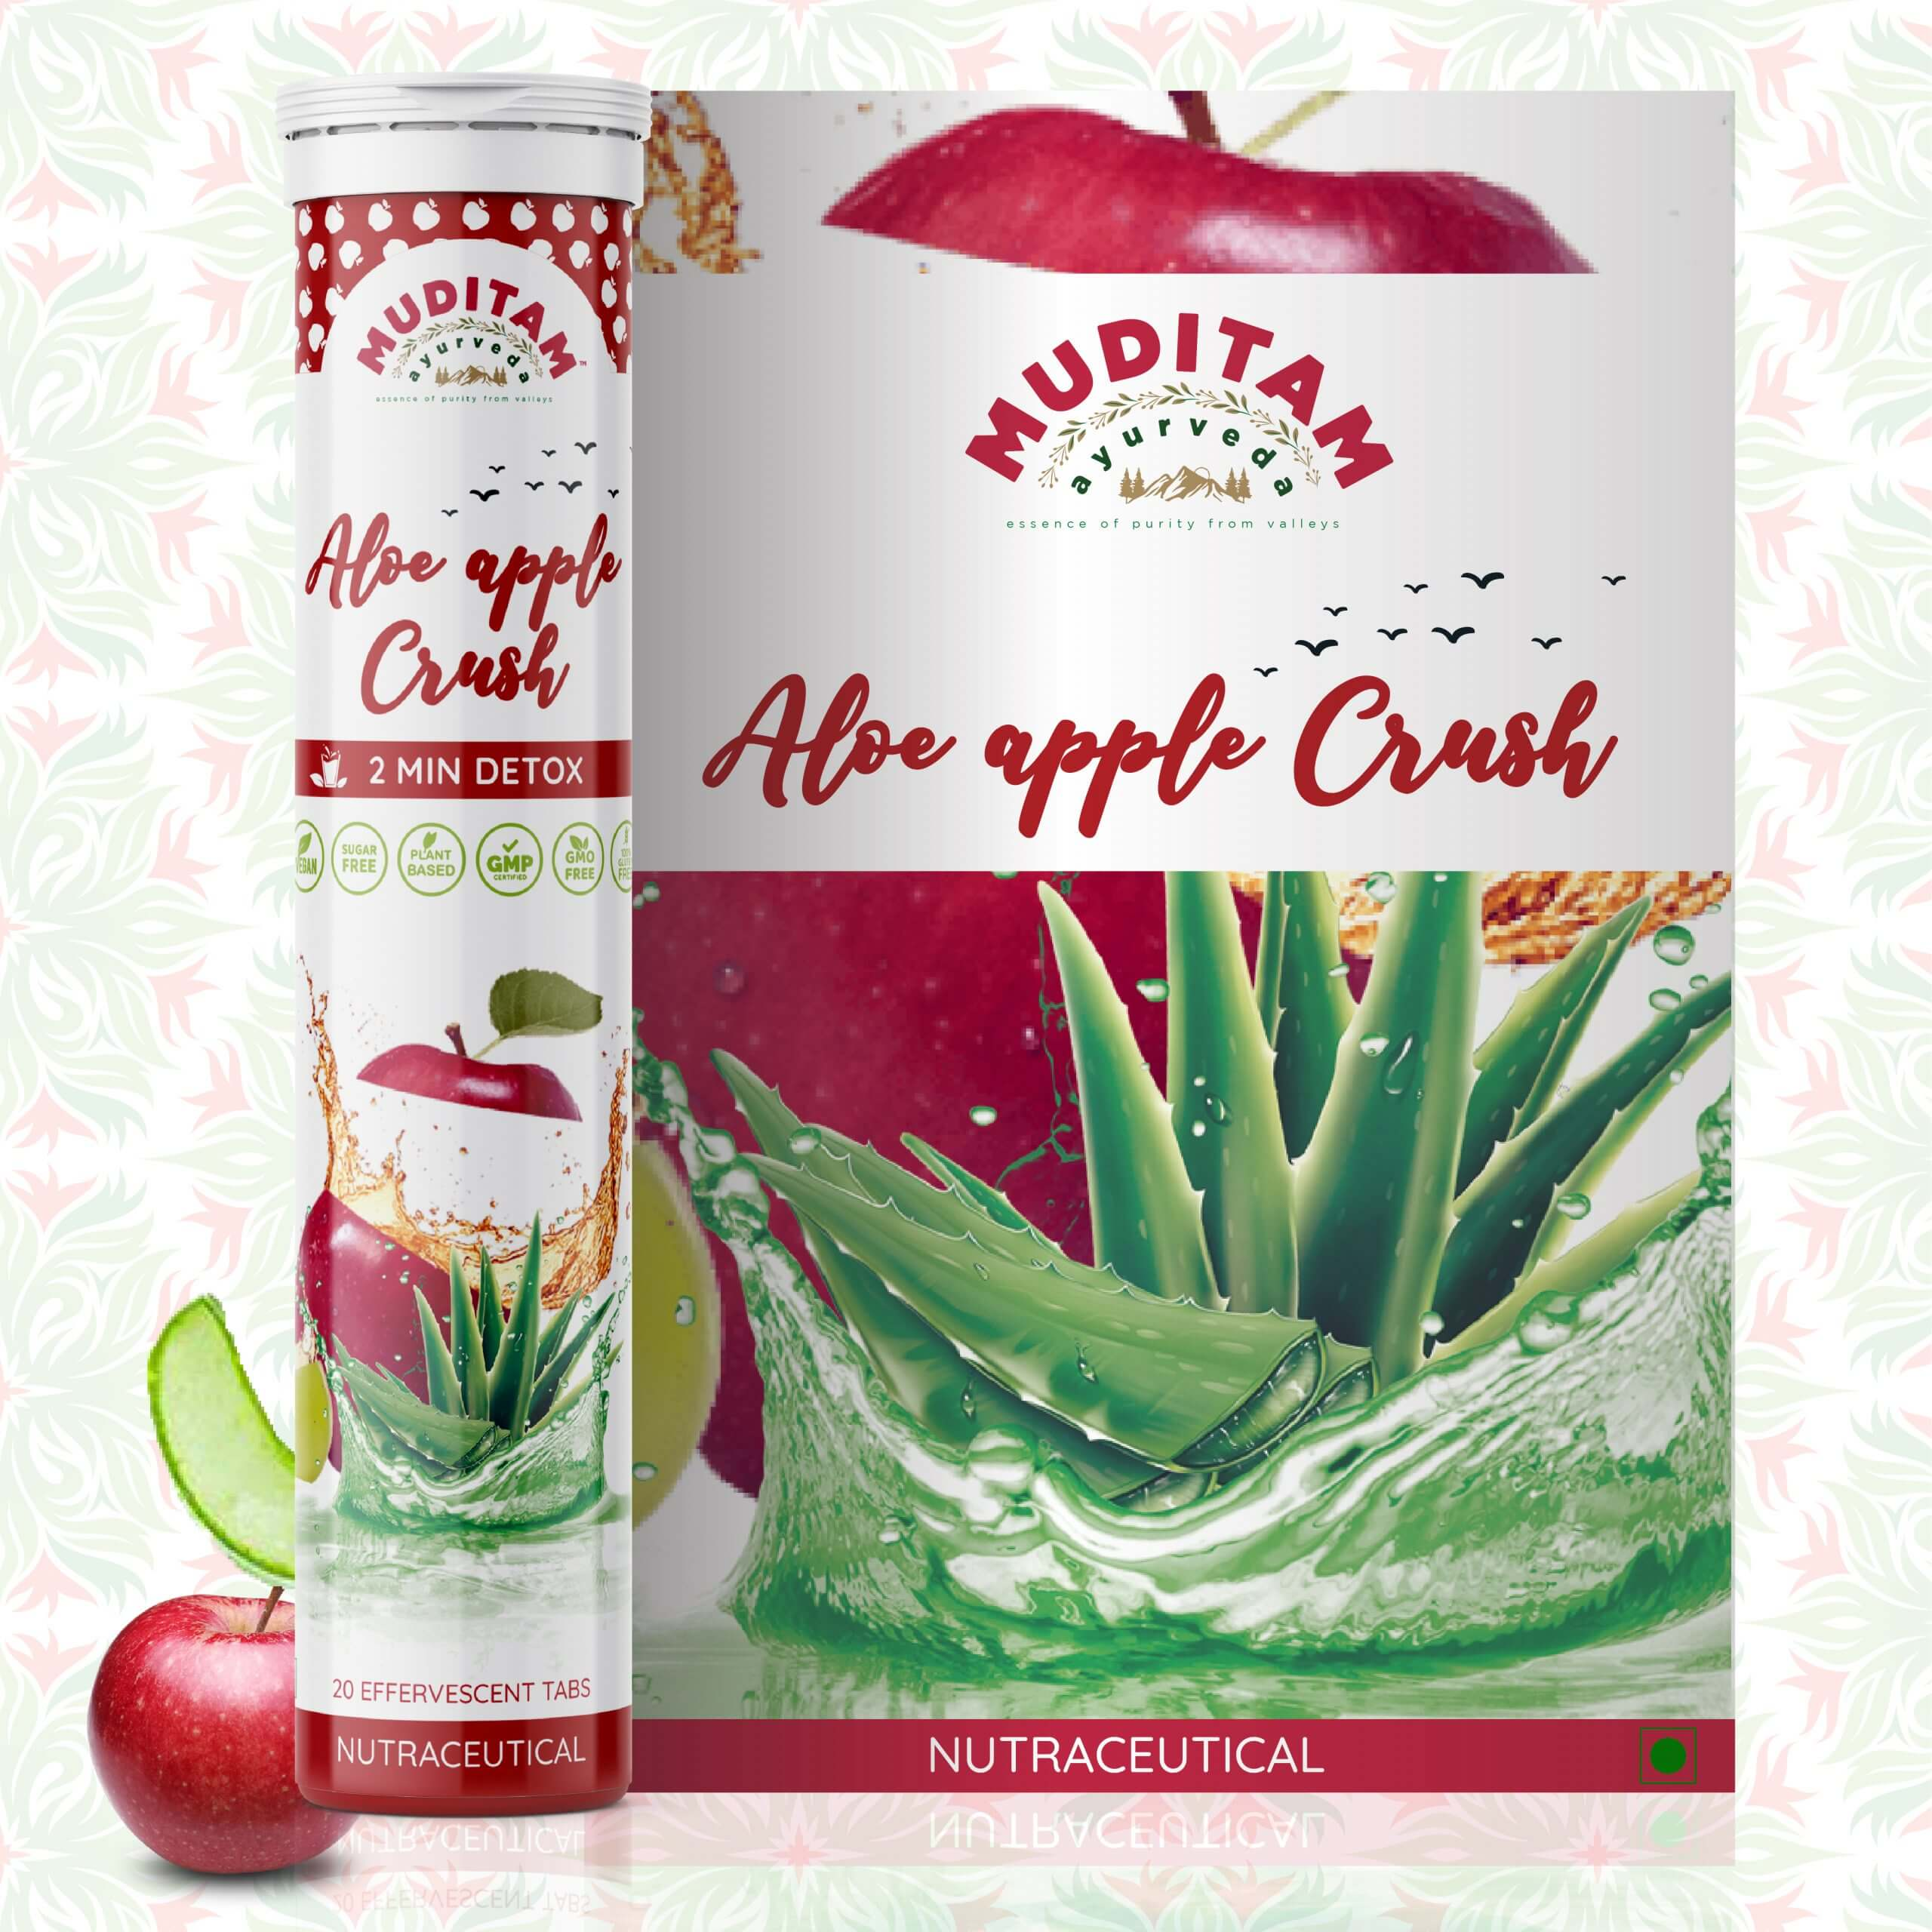 aloe apple crush online img